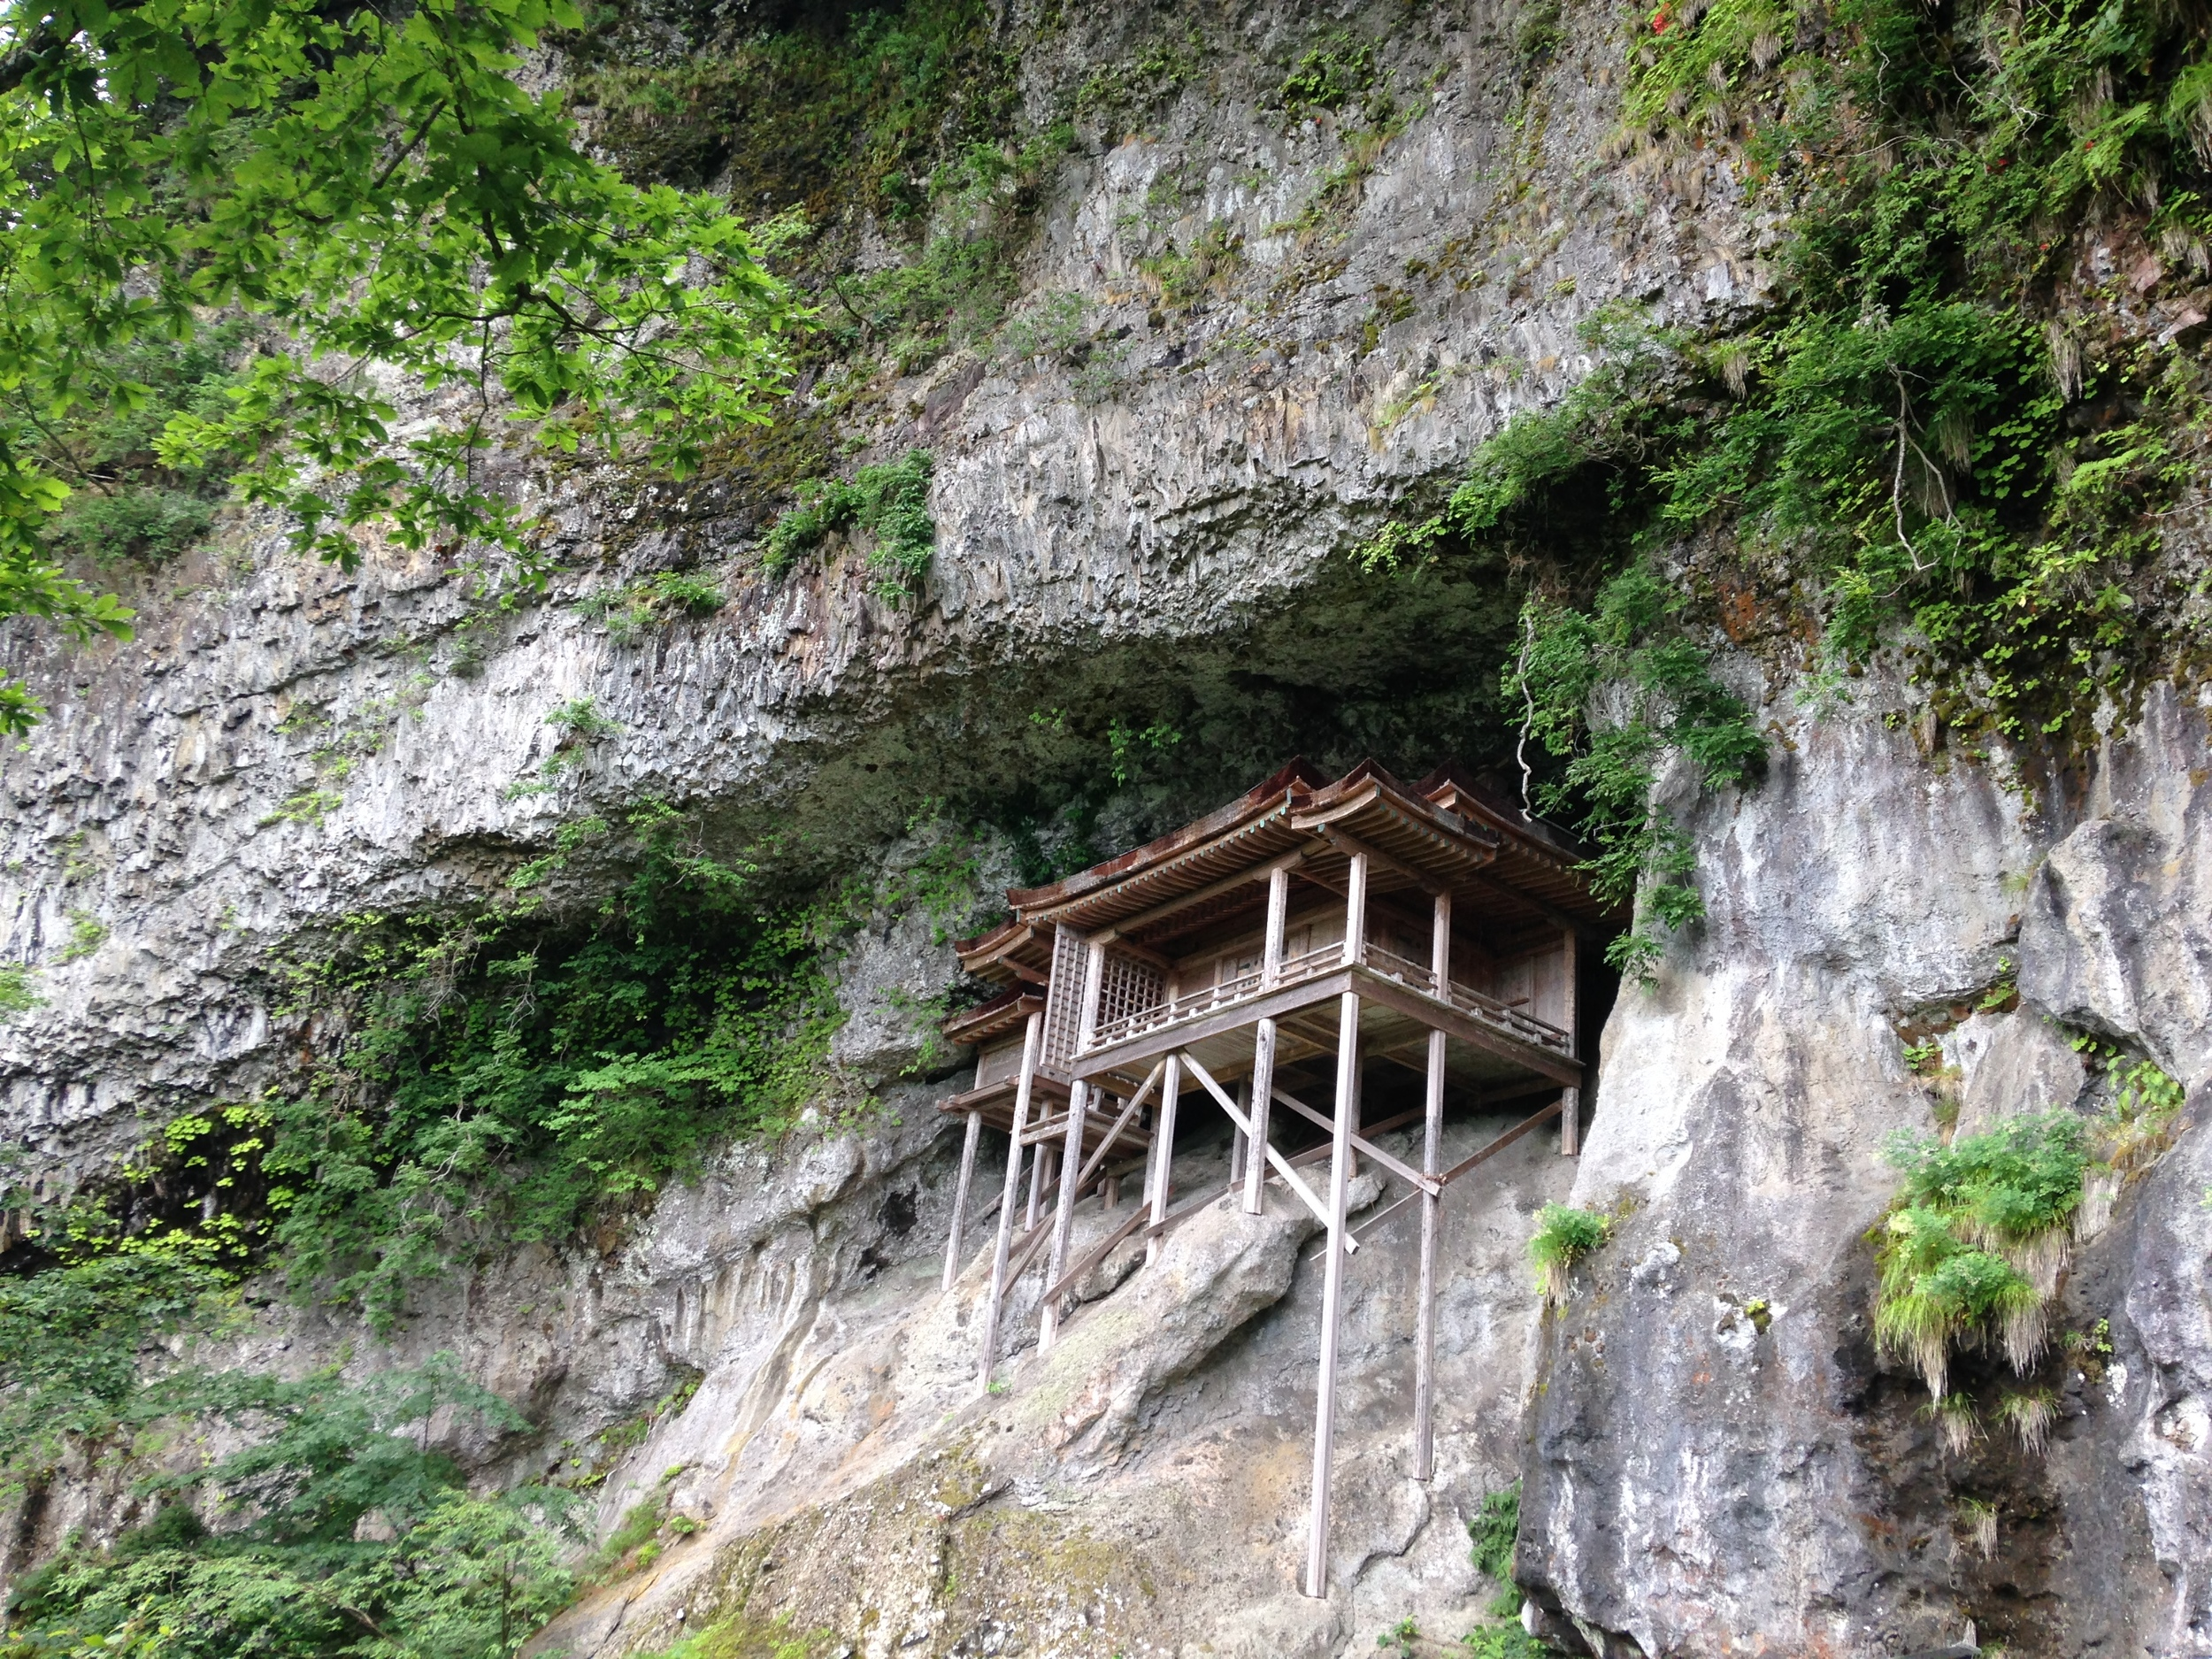 Nageiredo Temple, a beautiful 1300 year old structure built into the cliff face at nearby Mount Mitoku.